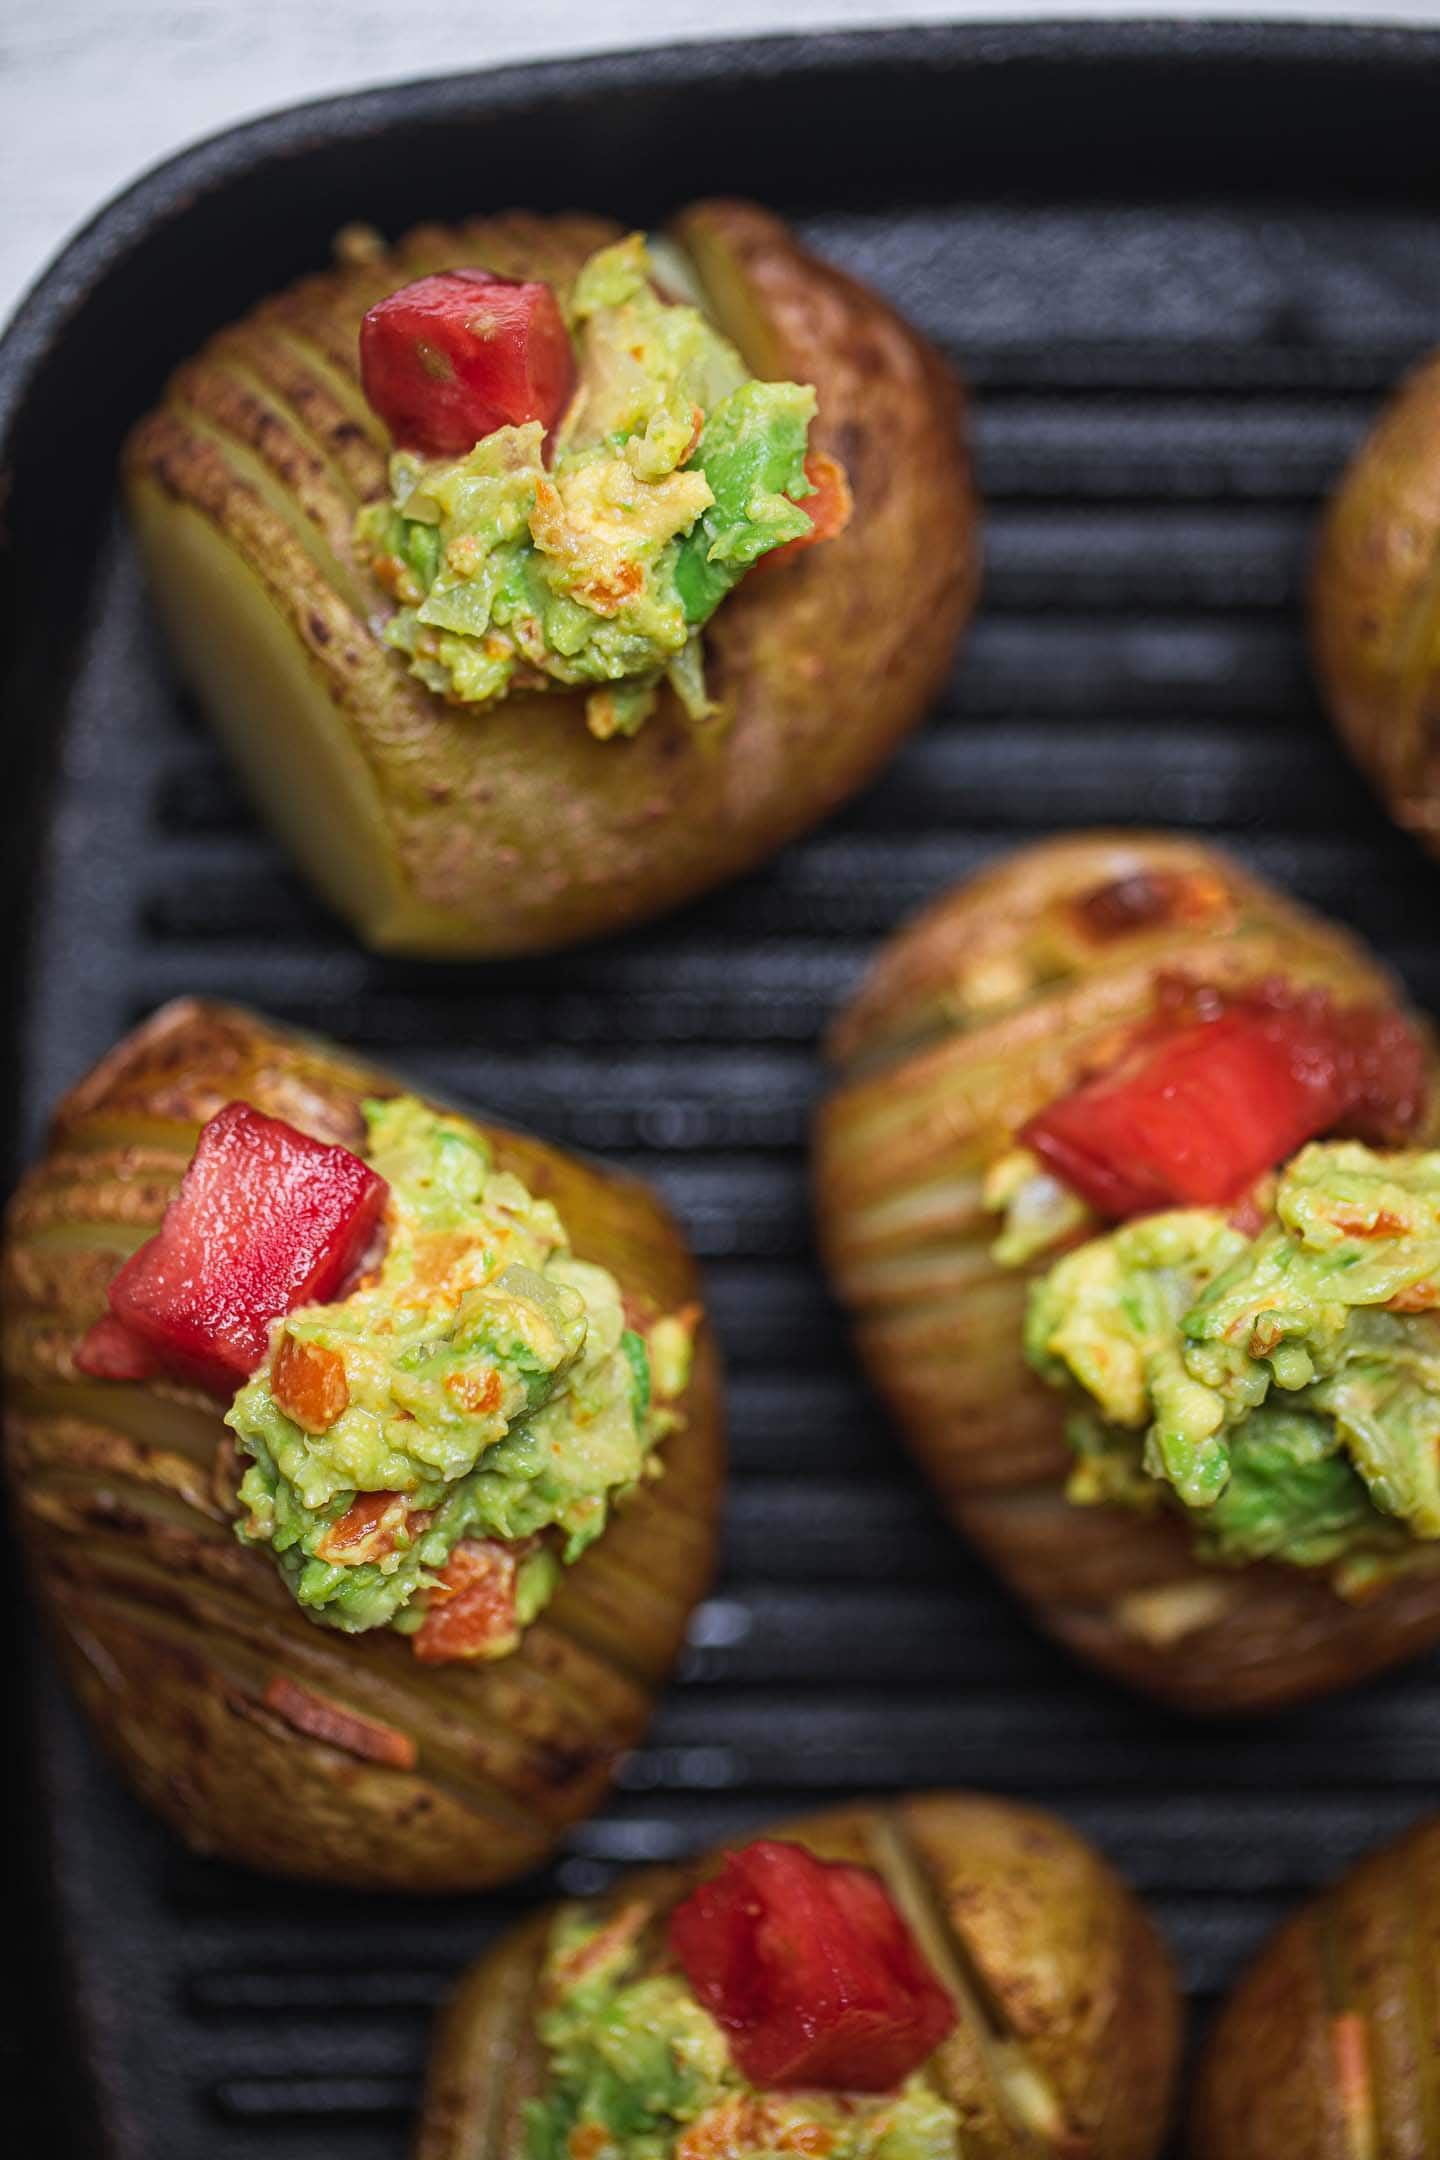 Closeup of potatoes with avocado and vegetables